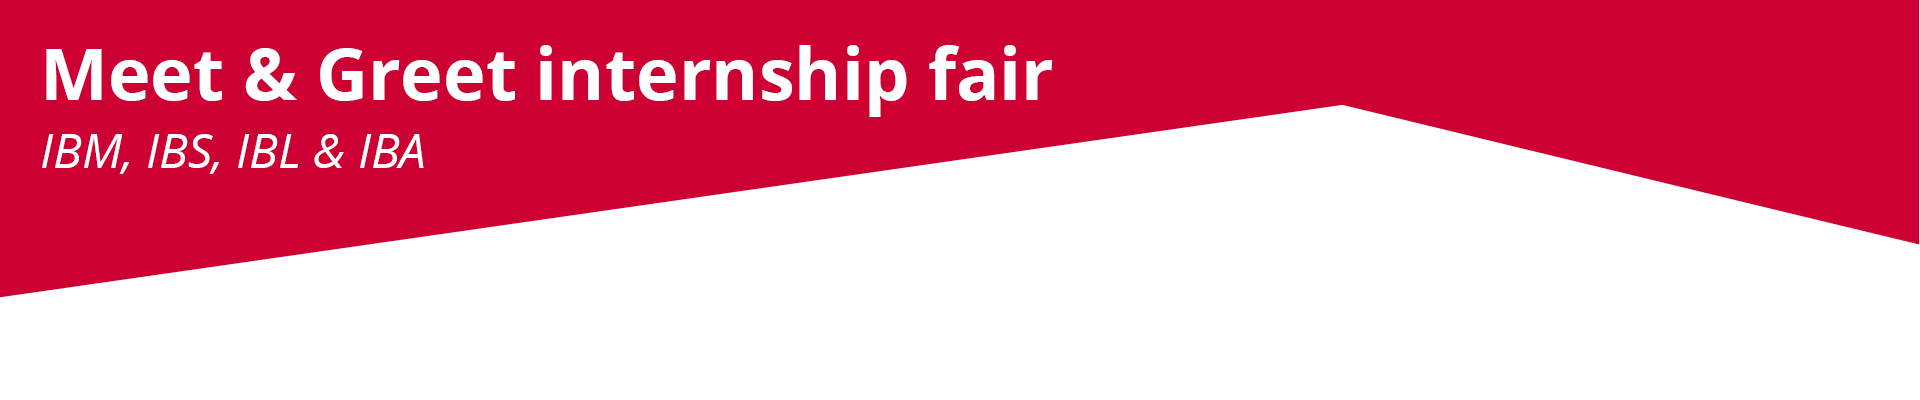 Meet & greet internship fair 2020 - jaar 3